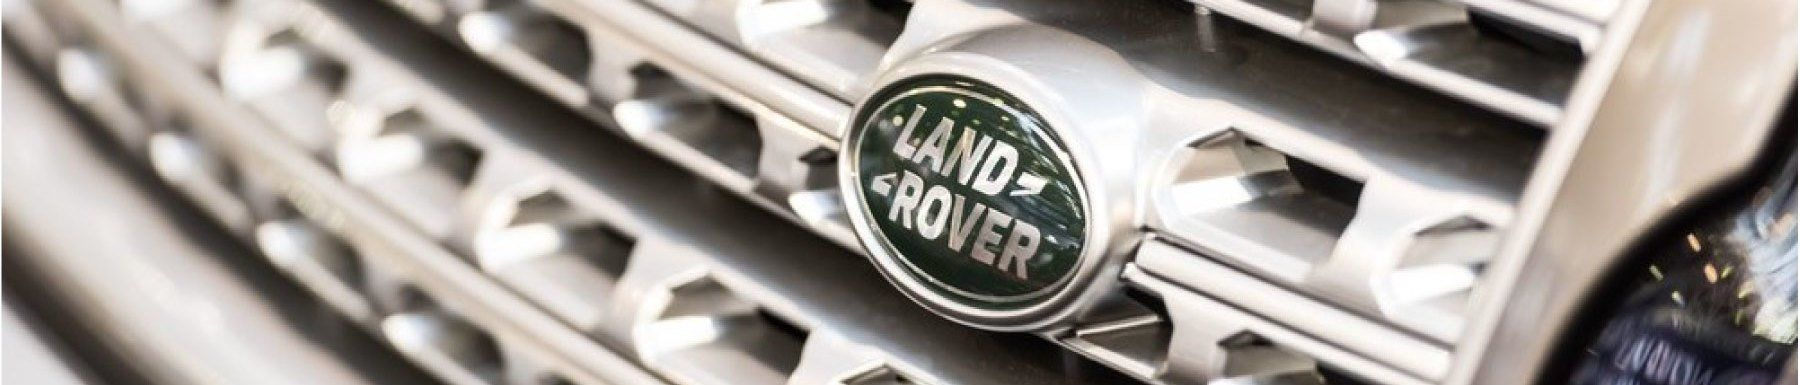 How Often Should I Have My Land Rover Serviced?